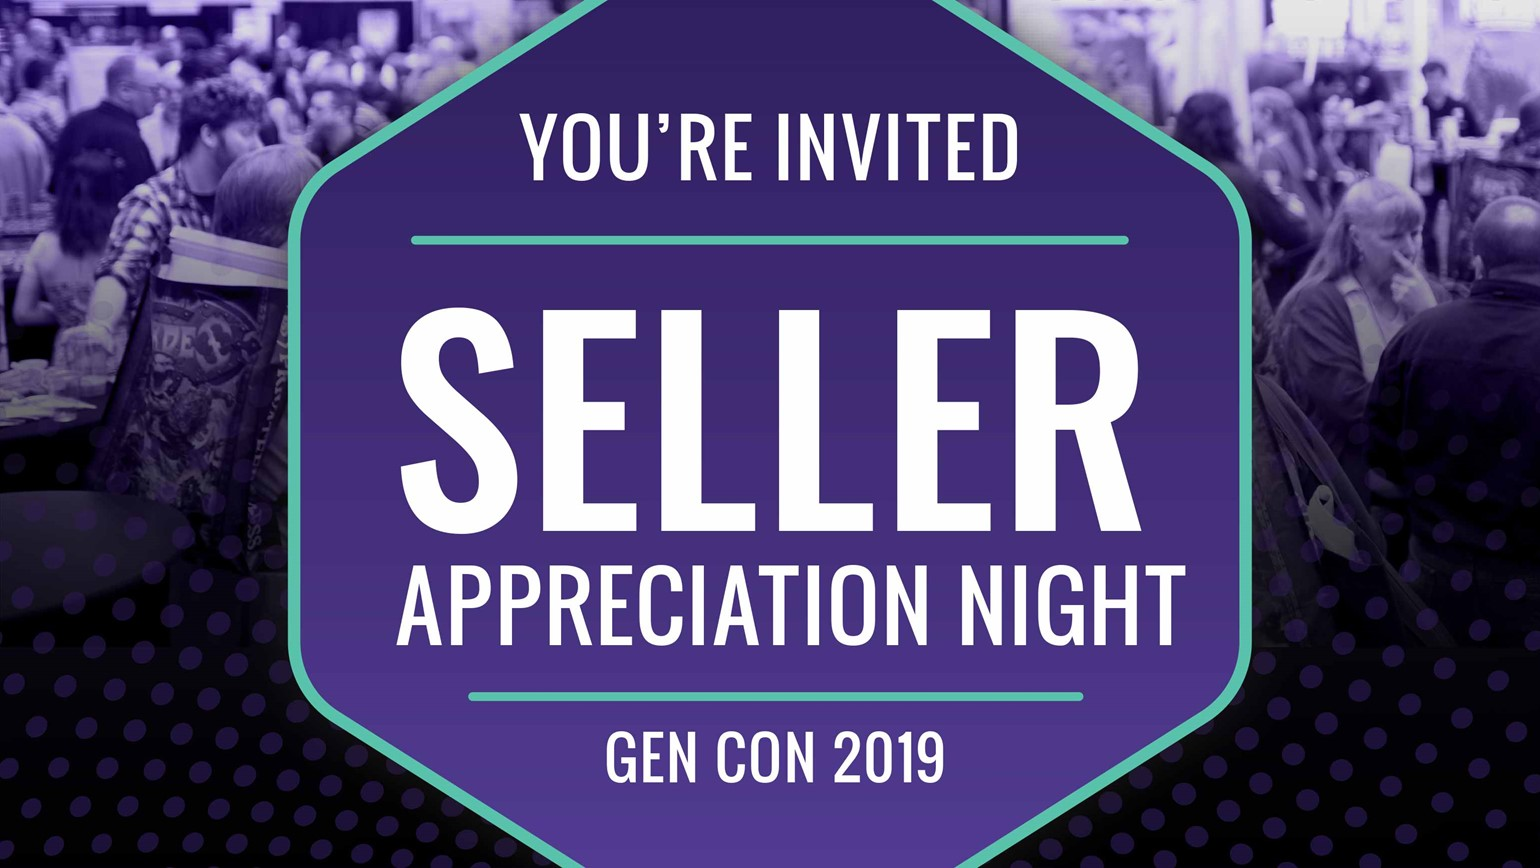 Let's Meet at Gen Con! RSVP for Seller Appreciation Night